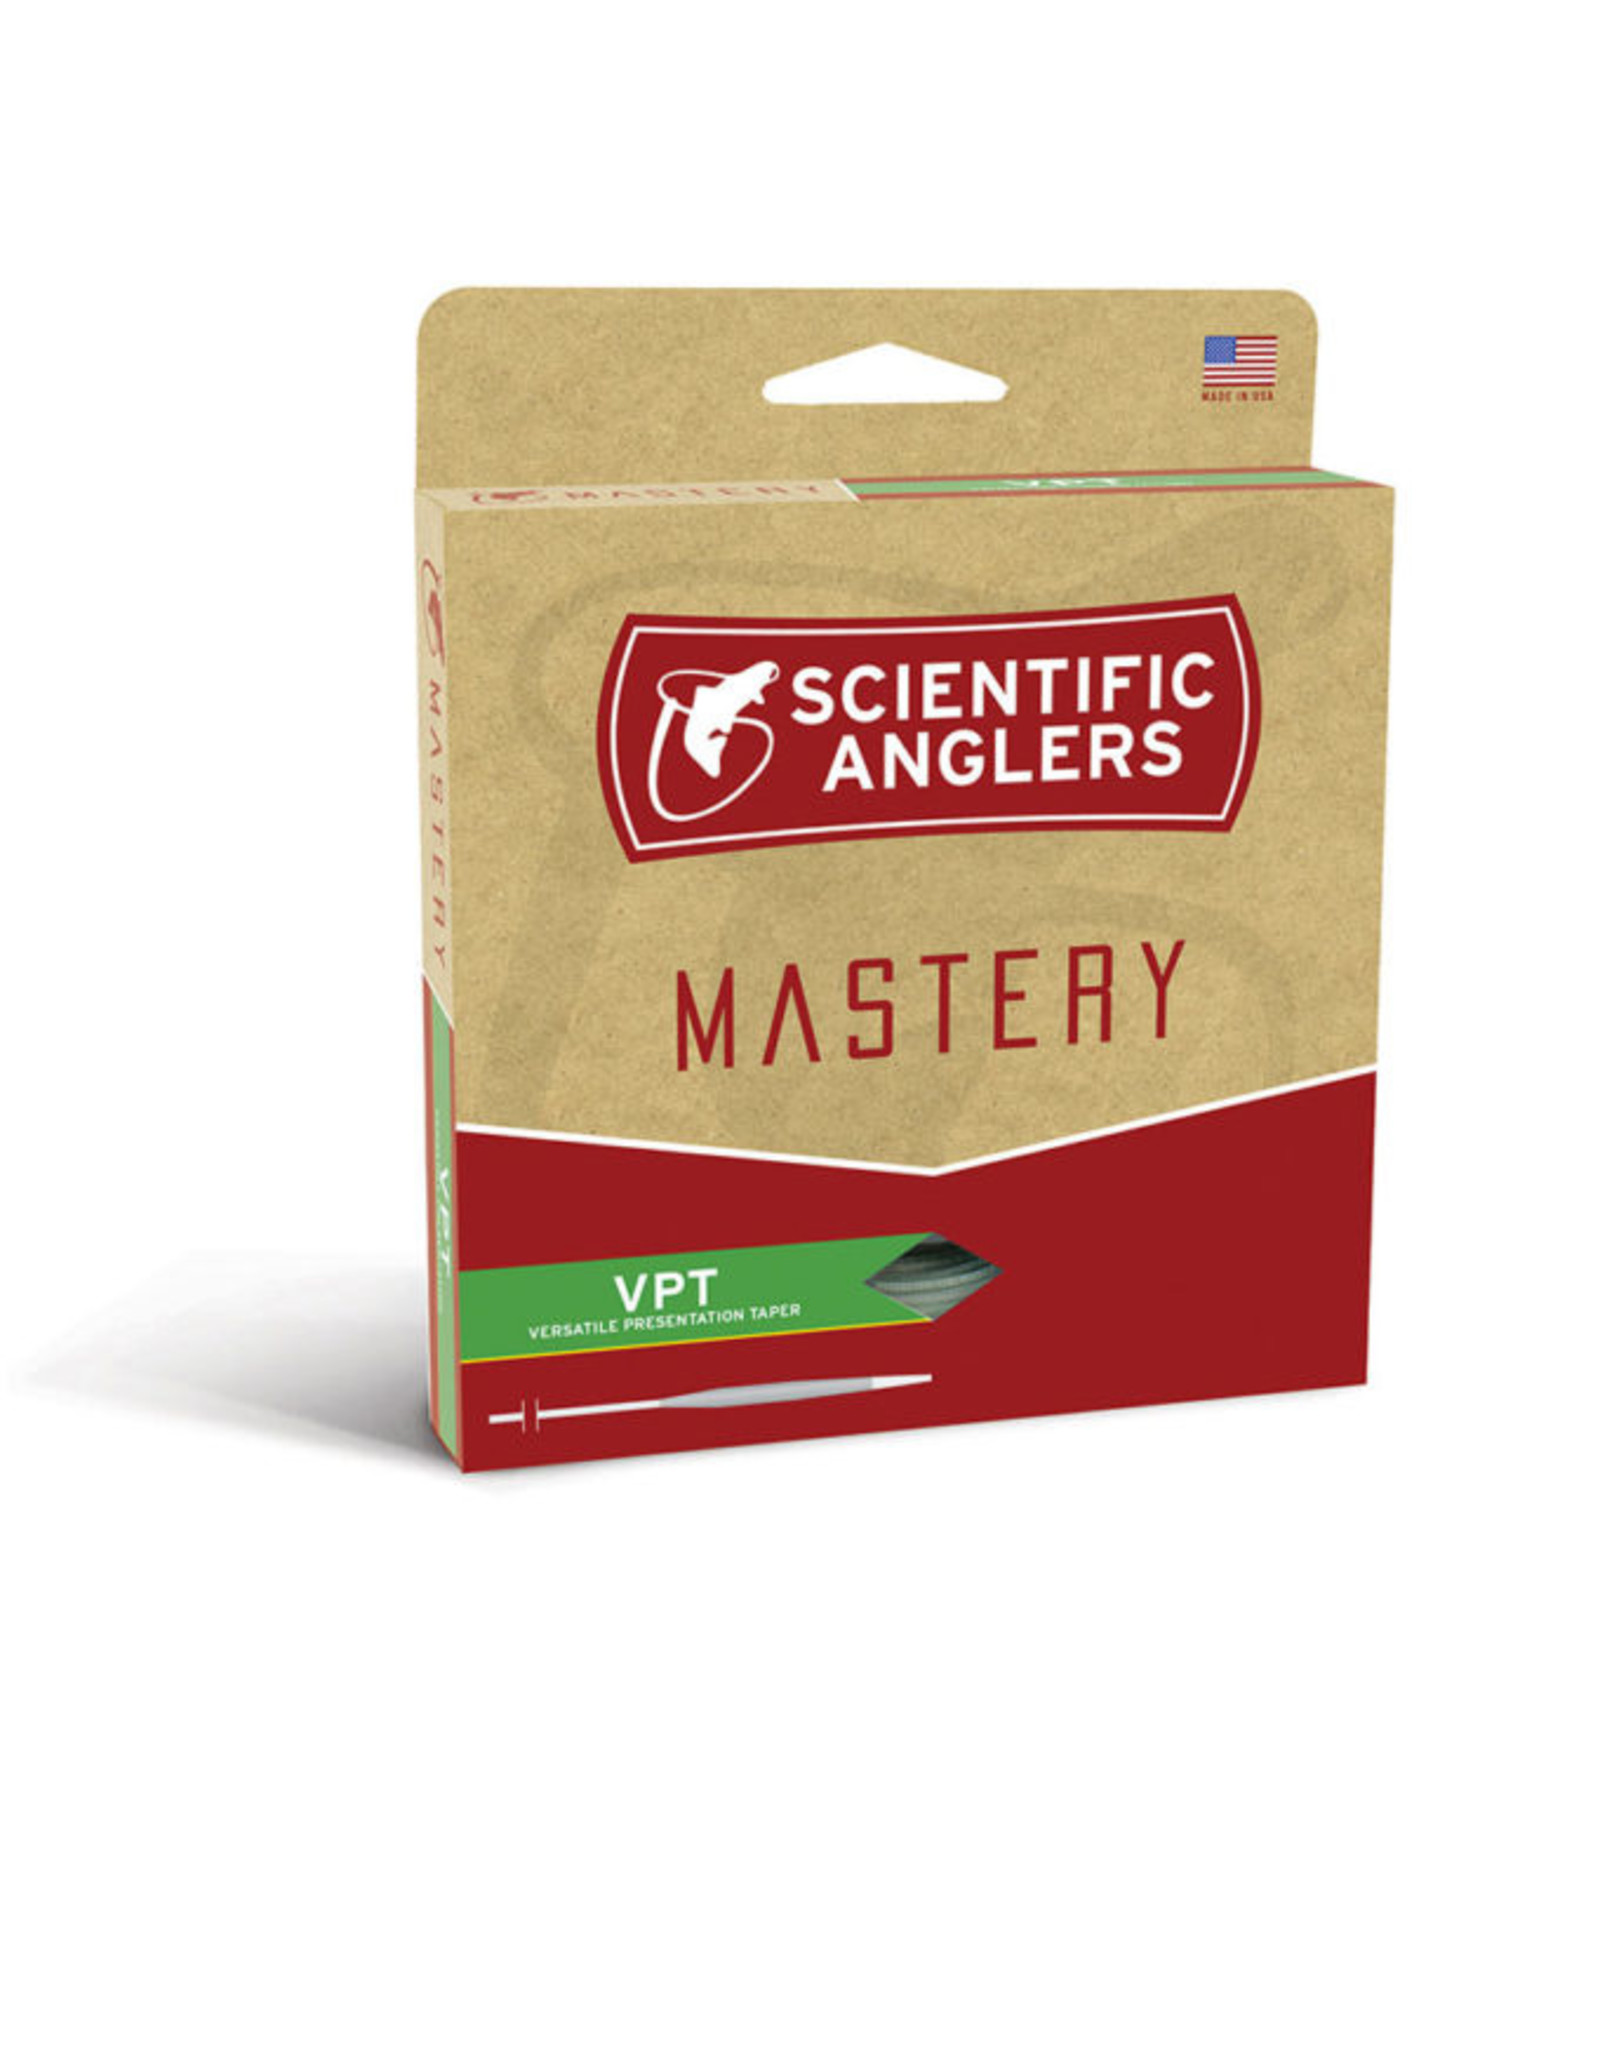 Scientific Anglers Scientific Anglers - Mastery VPT Fly Line